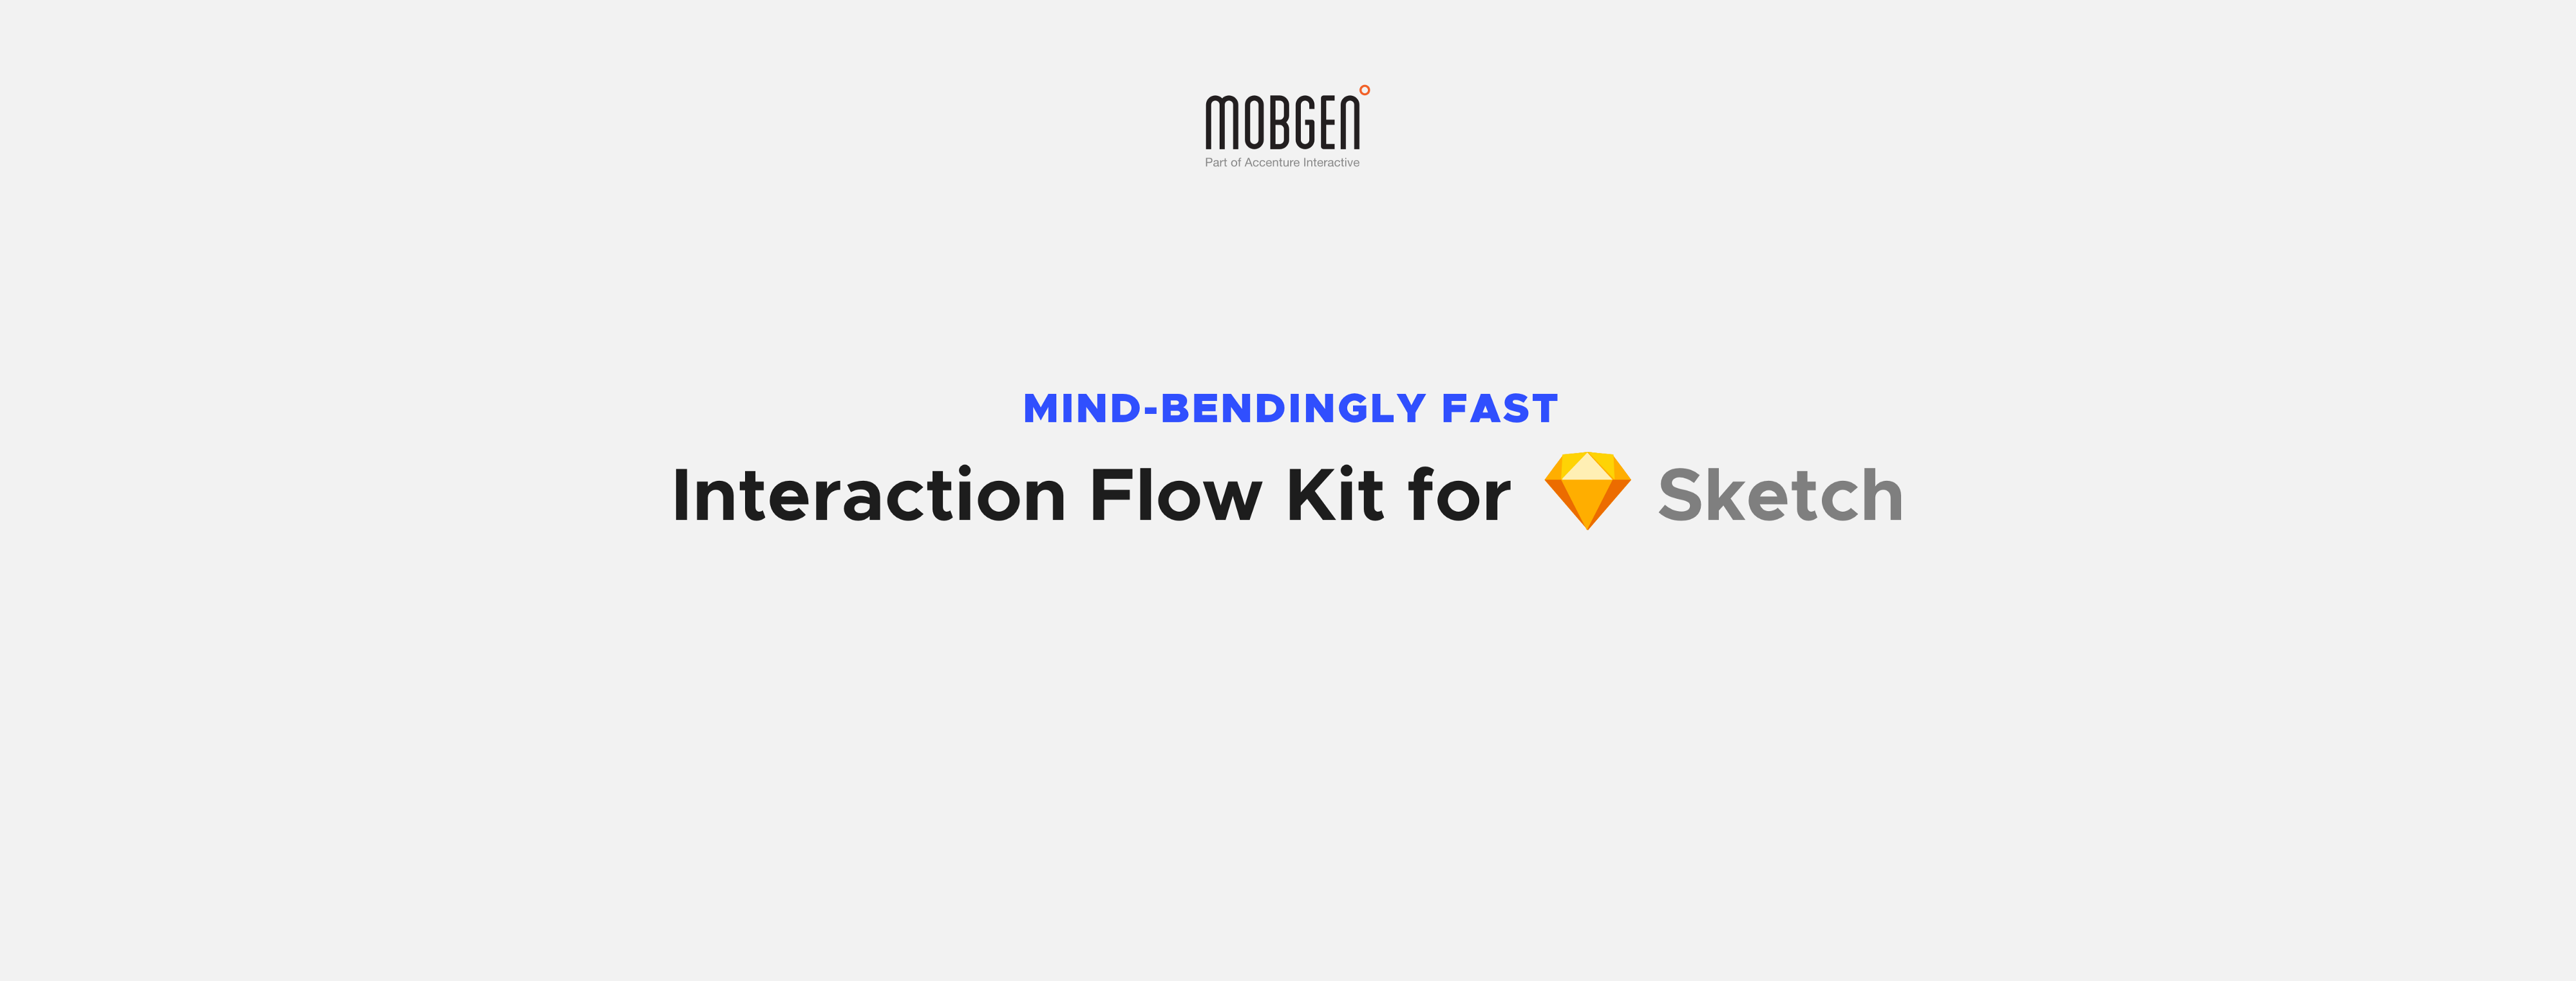 Interaction Flow Kit for Sketch — Created by MOBGEN